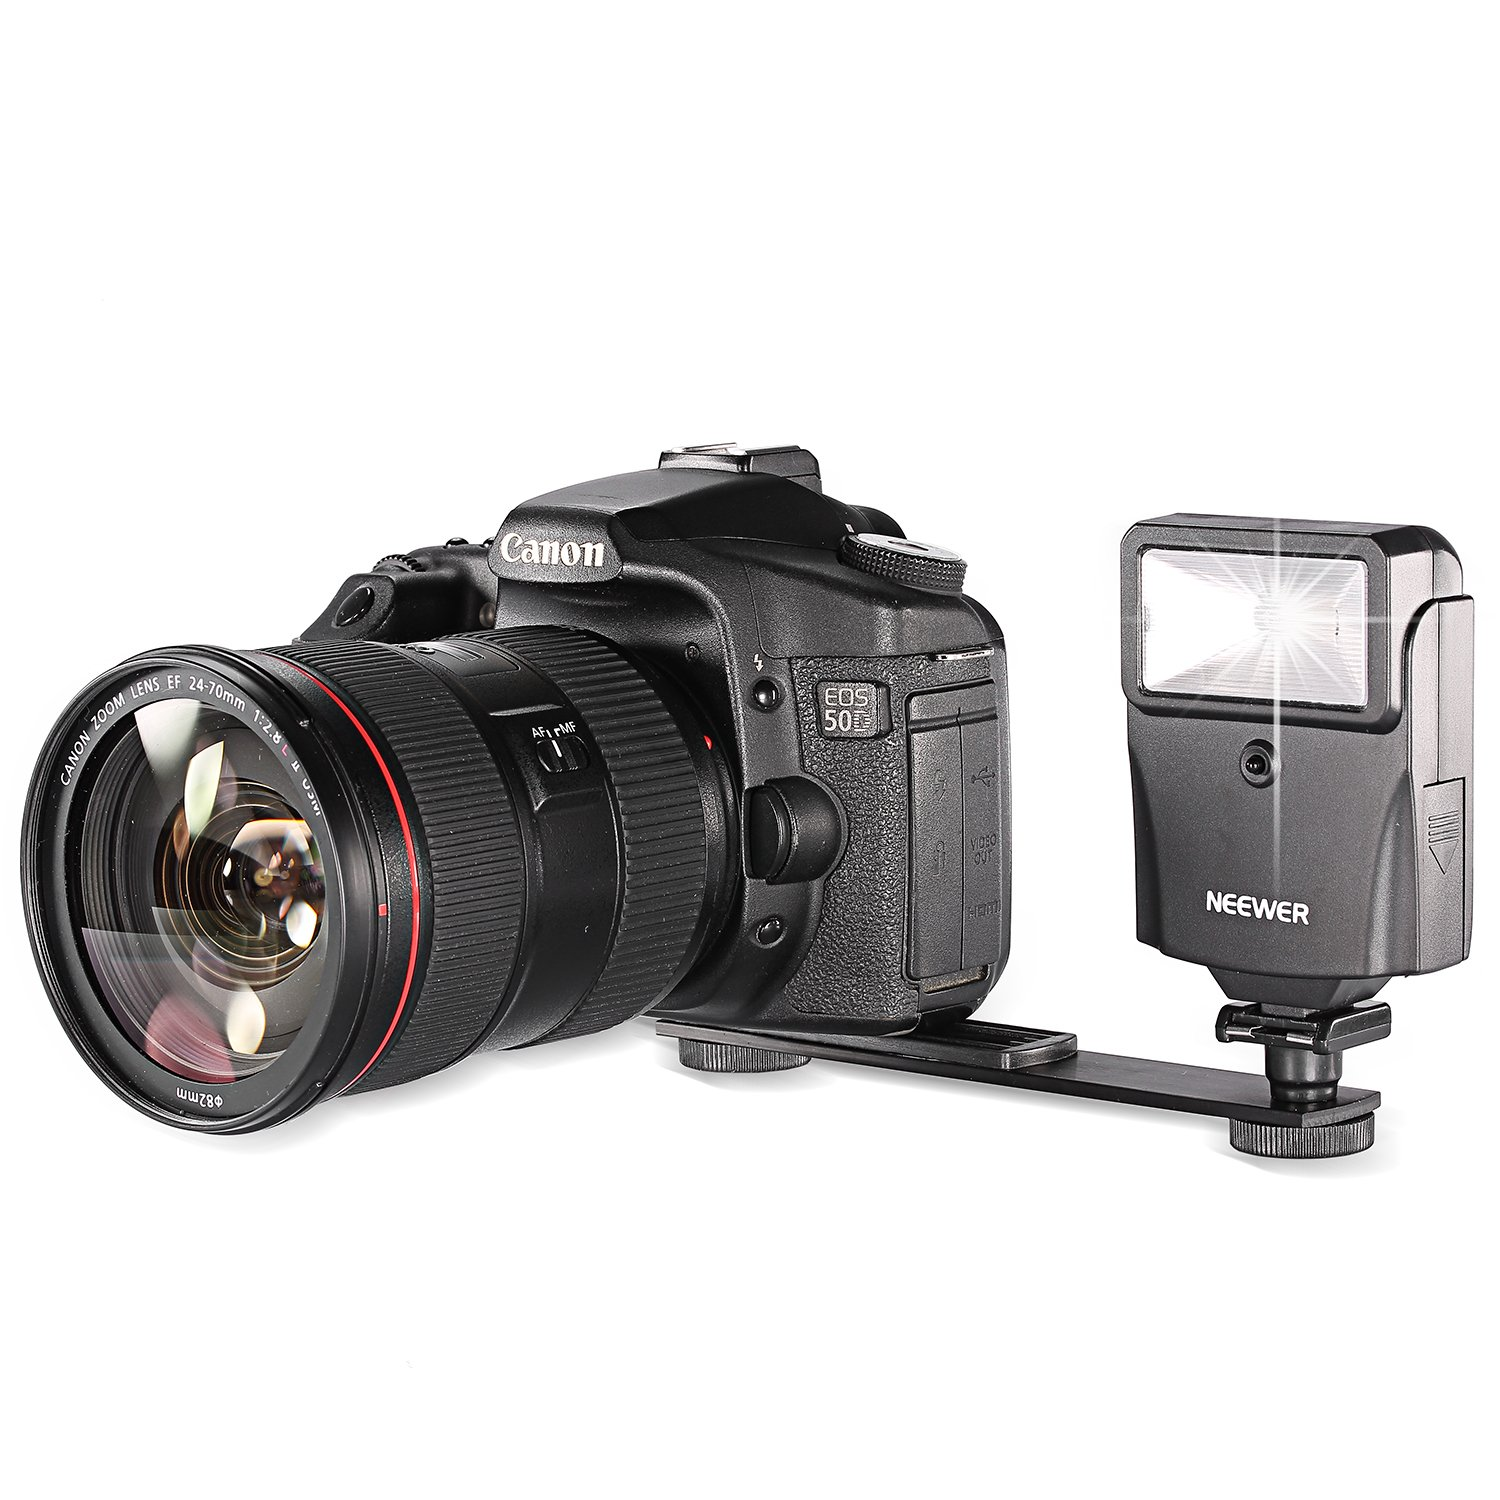 Neewer All-Camera (Sony, Canon, Nikon, Olympus, Kodak, Etc.) Auto Digital Slave Flash w/ Bracket Set